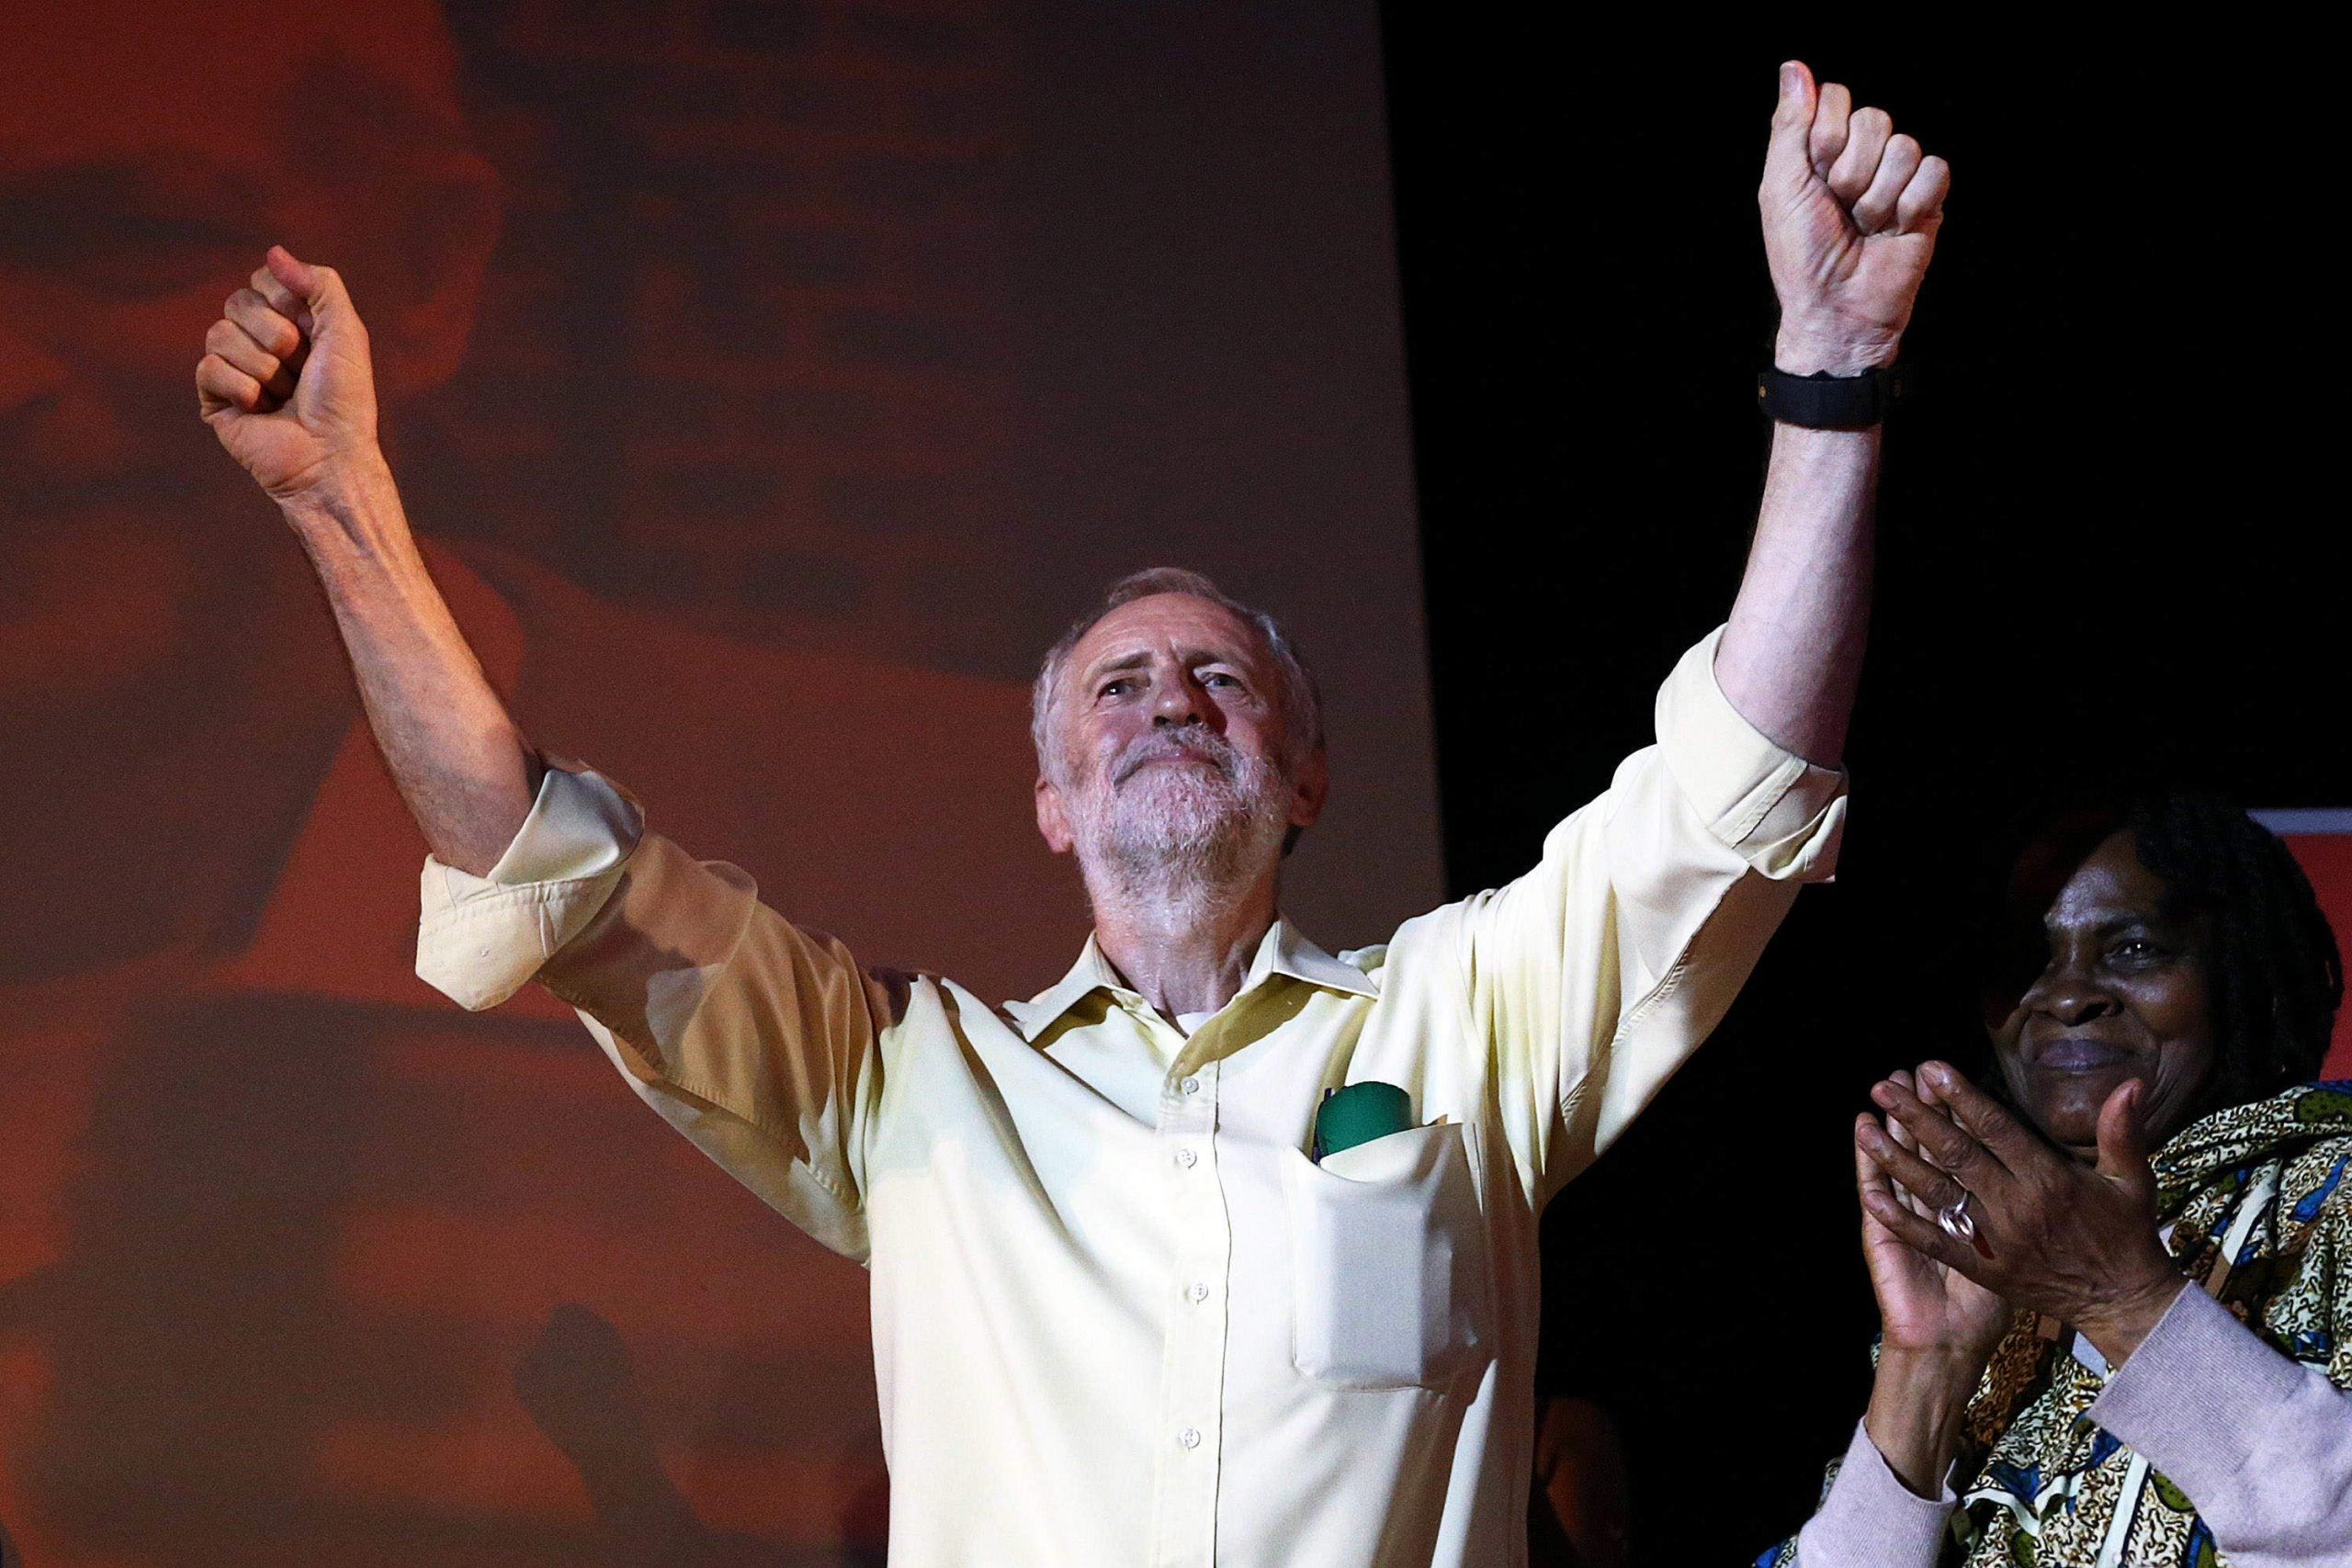 Jeremy Corbyn's victory is just the tip of the iceberg